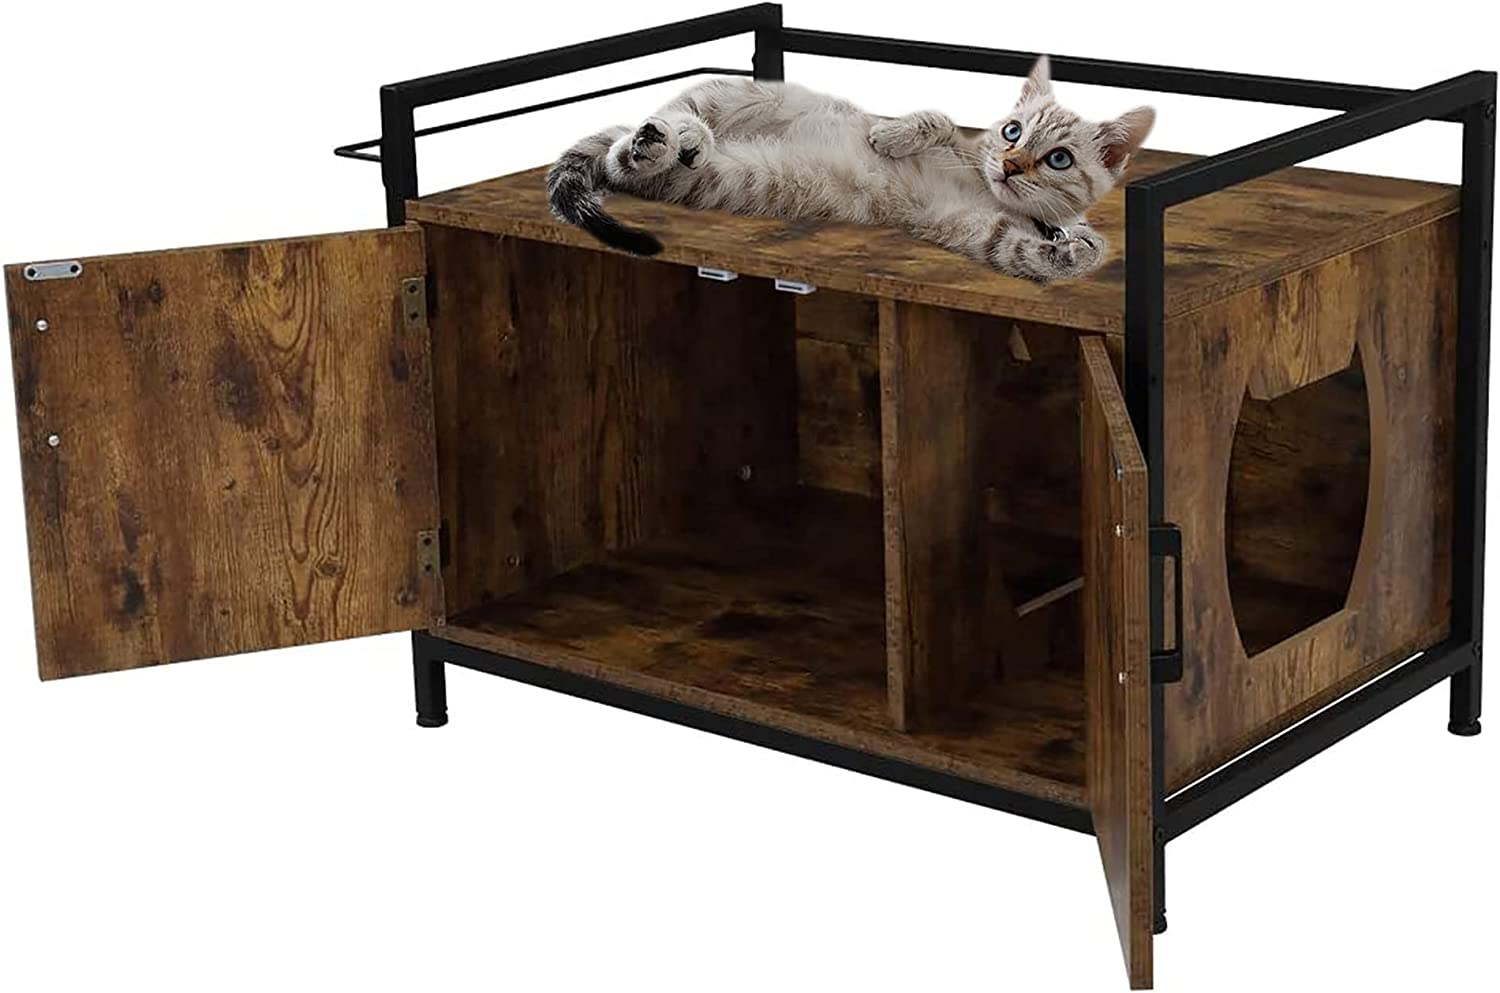 Cat Litter Box Enclosure Furniture, Decorative Cat House and Side Table, Wooden Cat Home Nightstand Hidden, Indoor Pet Crate, Privacy Cat Washroom Bench with Metal Frame and Wood Sturdy Structure, A